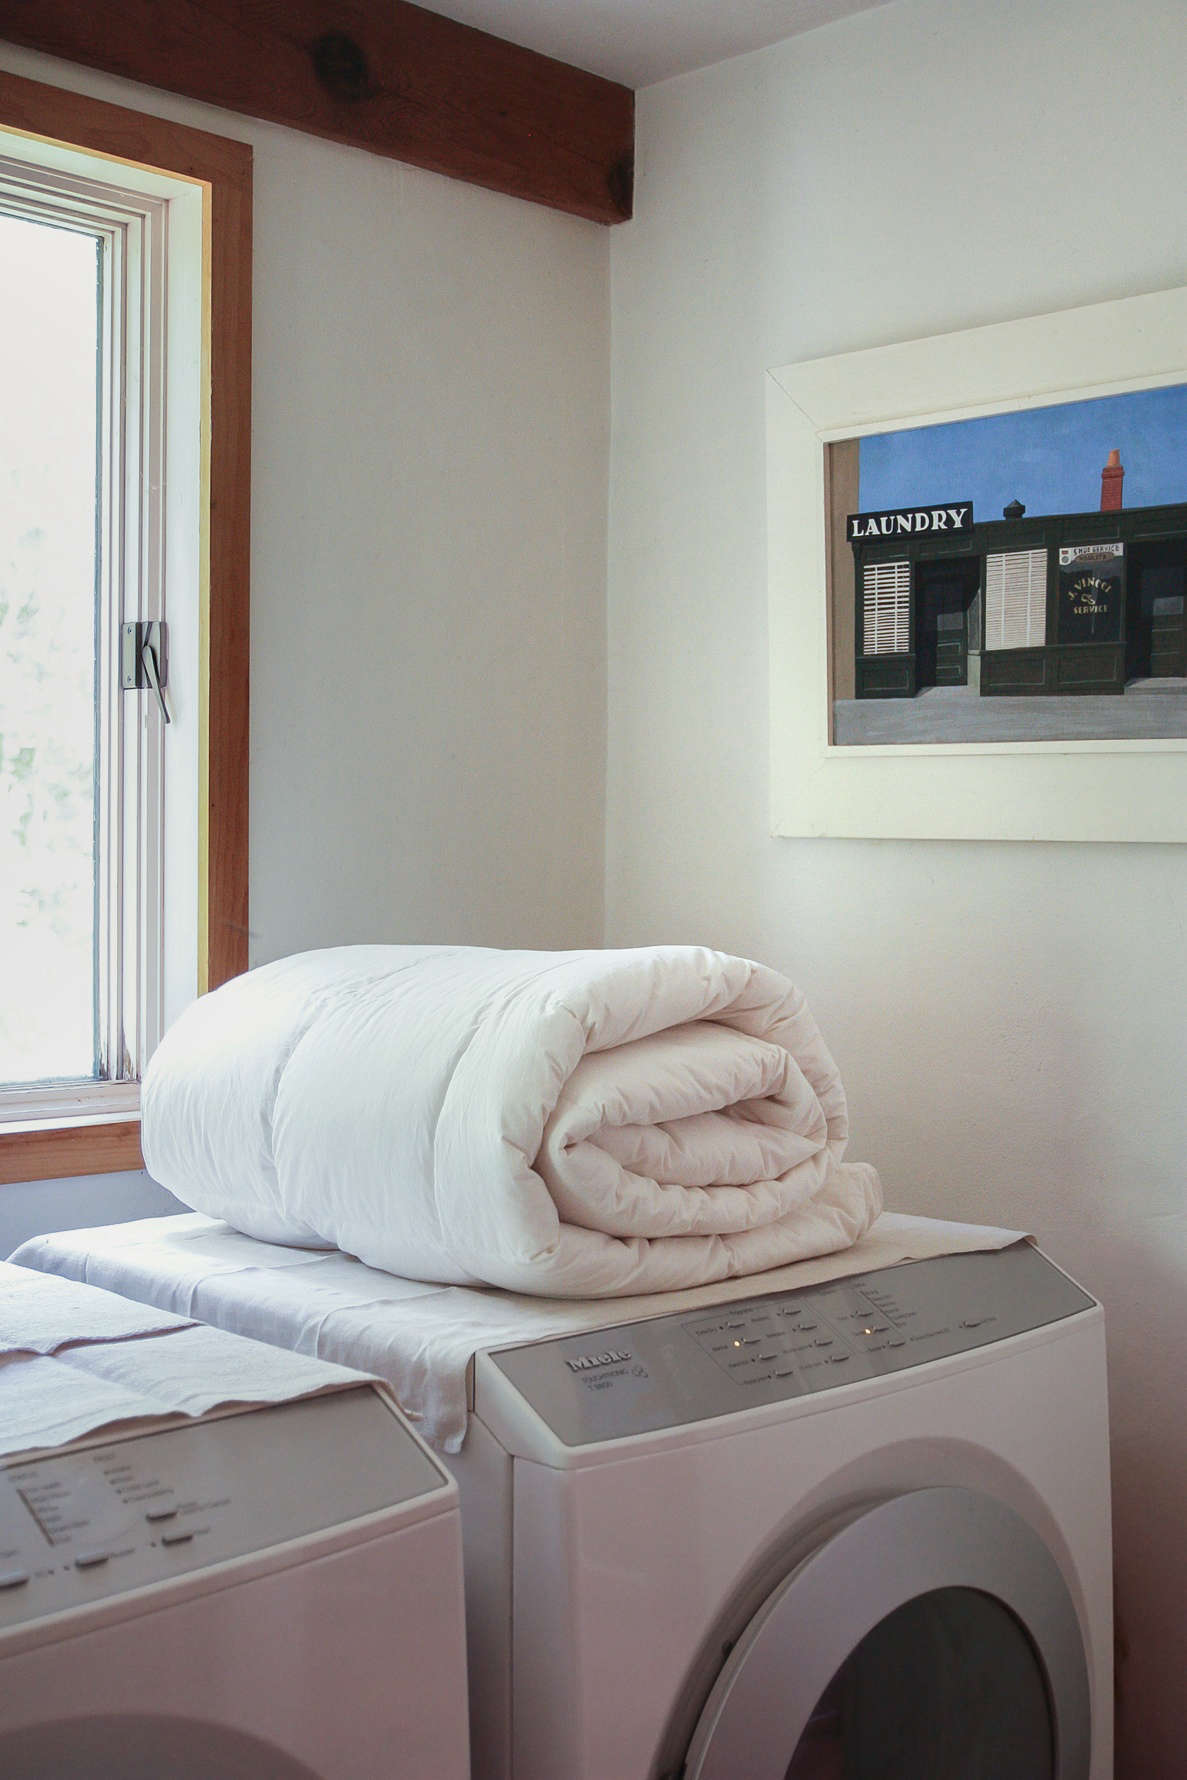 Domestic Science: How to Wash a Down Comforter